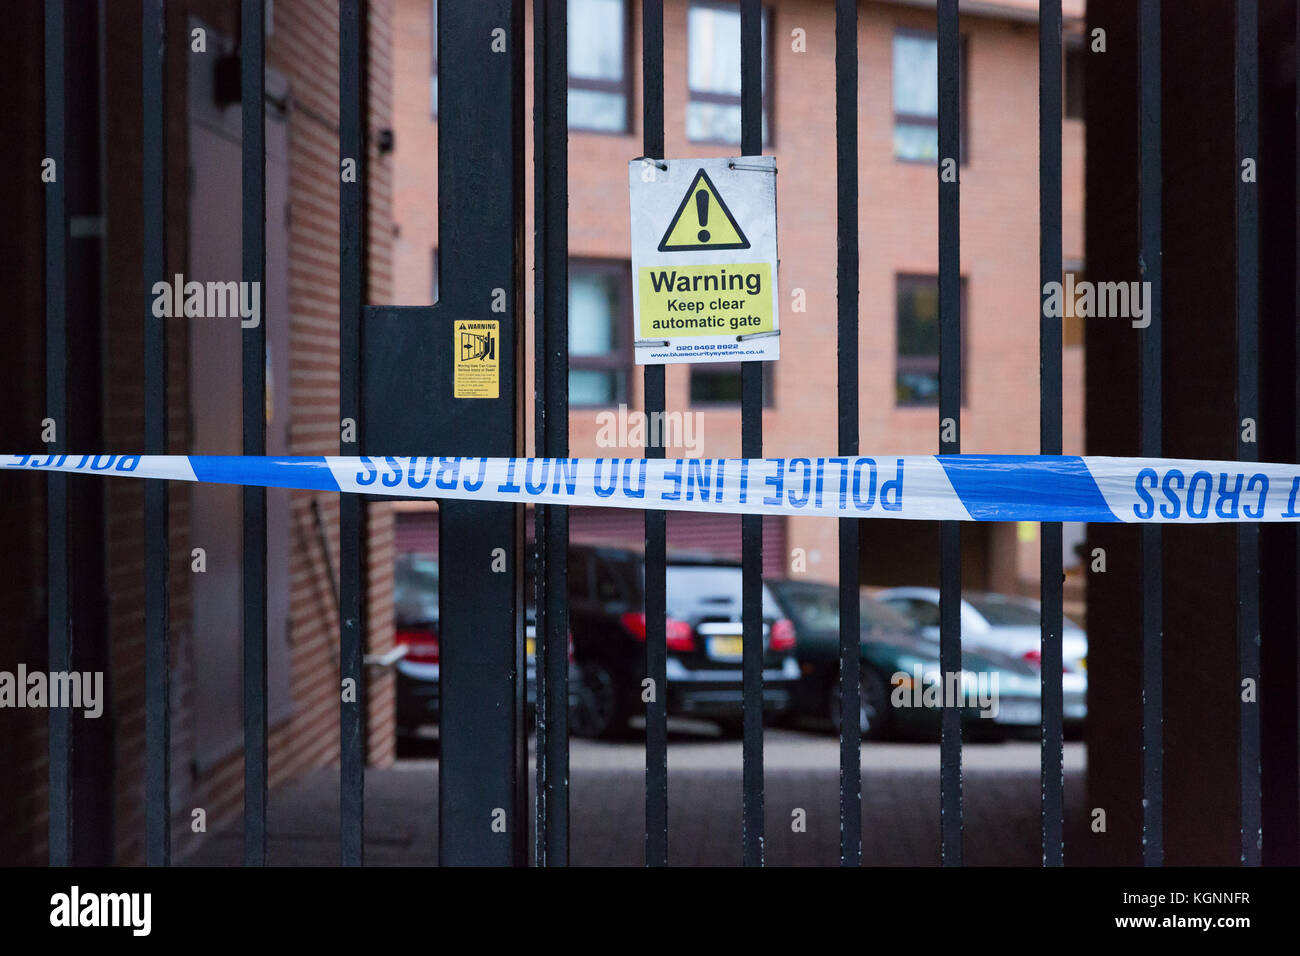 London, UK. 9th November 2017. Police exclusion cordon at Free Trade Wharf flats next to the Thames Tideway supersewer - Stock Image